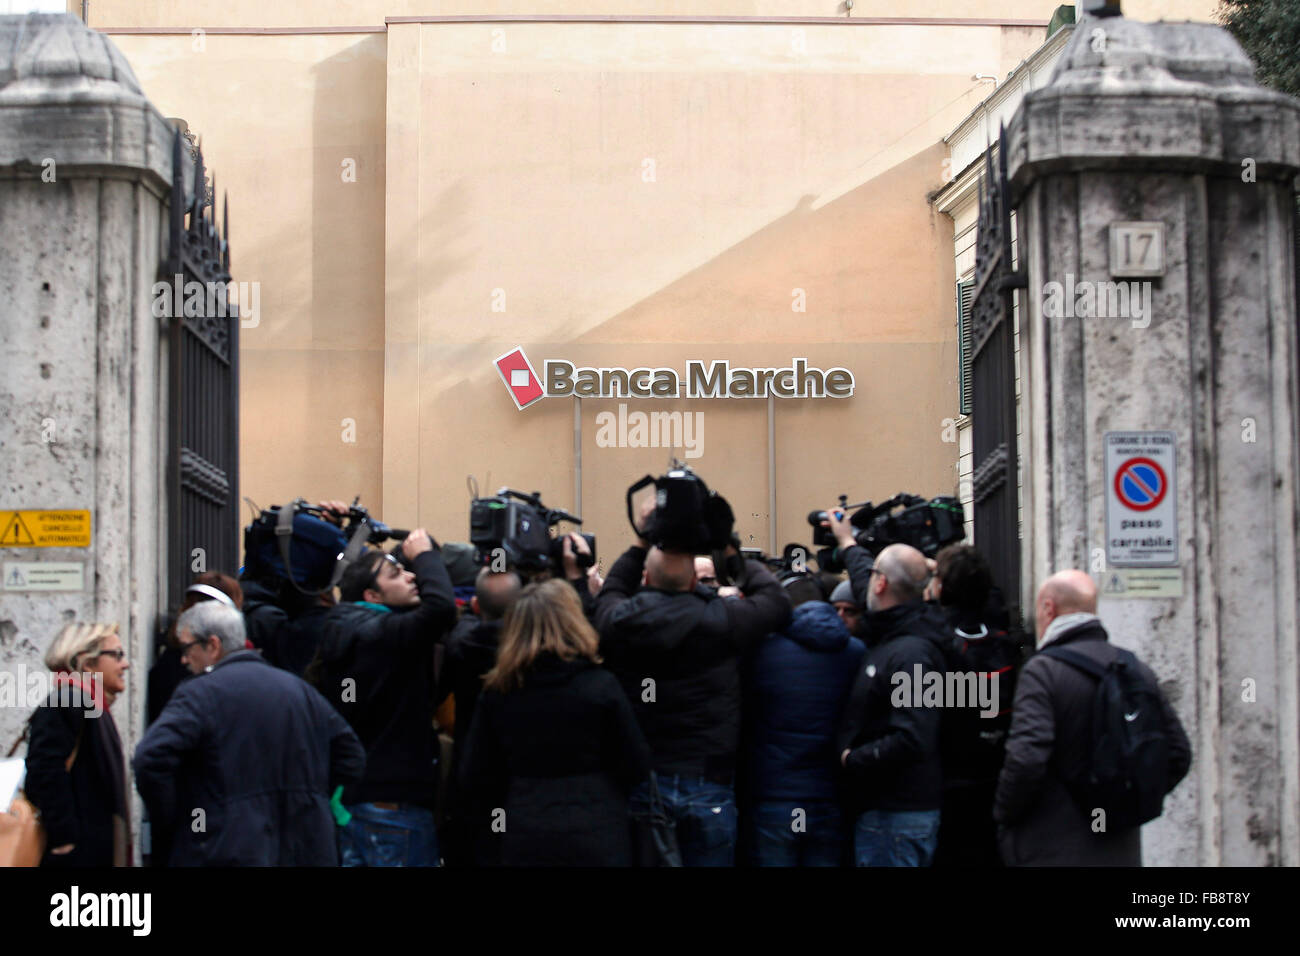 Rome, Italy. 12th January, 2016. Roman headquarters of Banca Marche, one of the four banks saved from bankrupt by - Stock Image